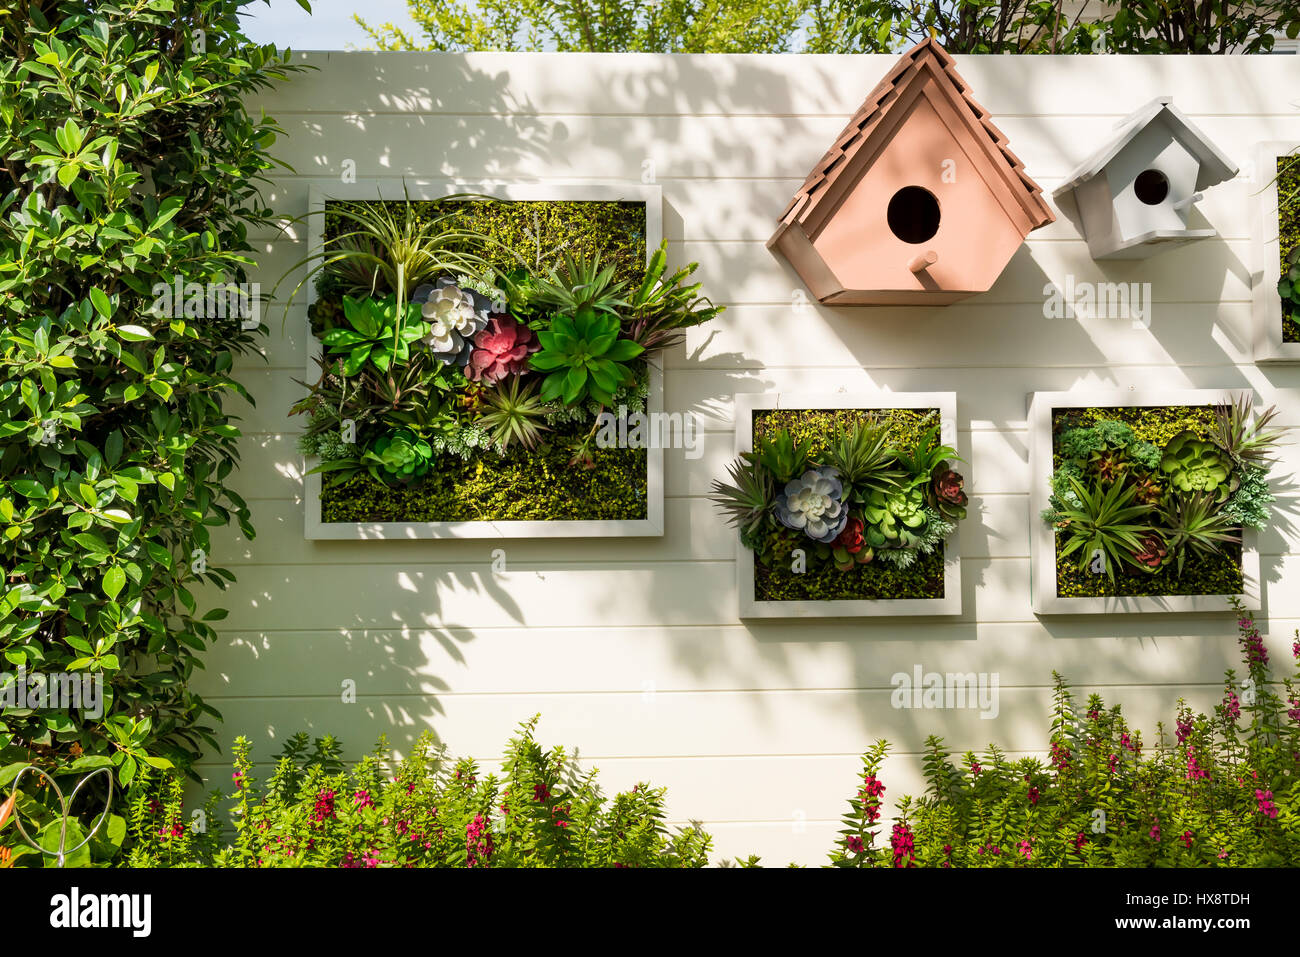 Decorated Wall Vertical Garden Idea Stock Photos & Decorated Wall ...